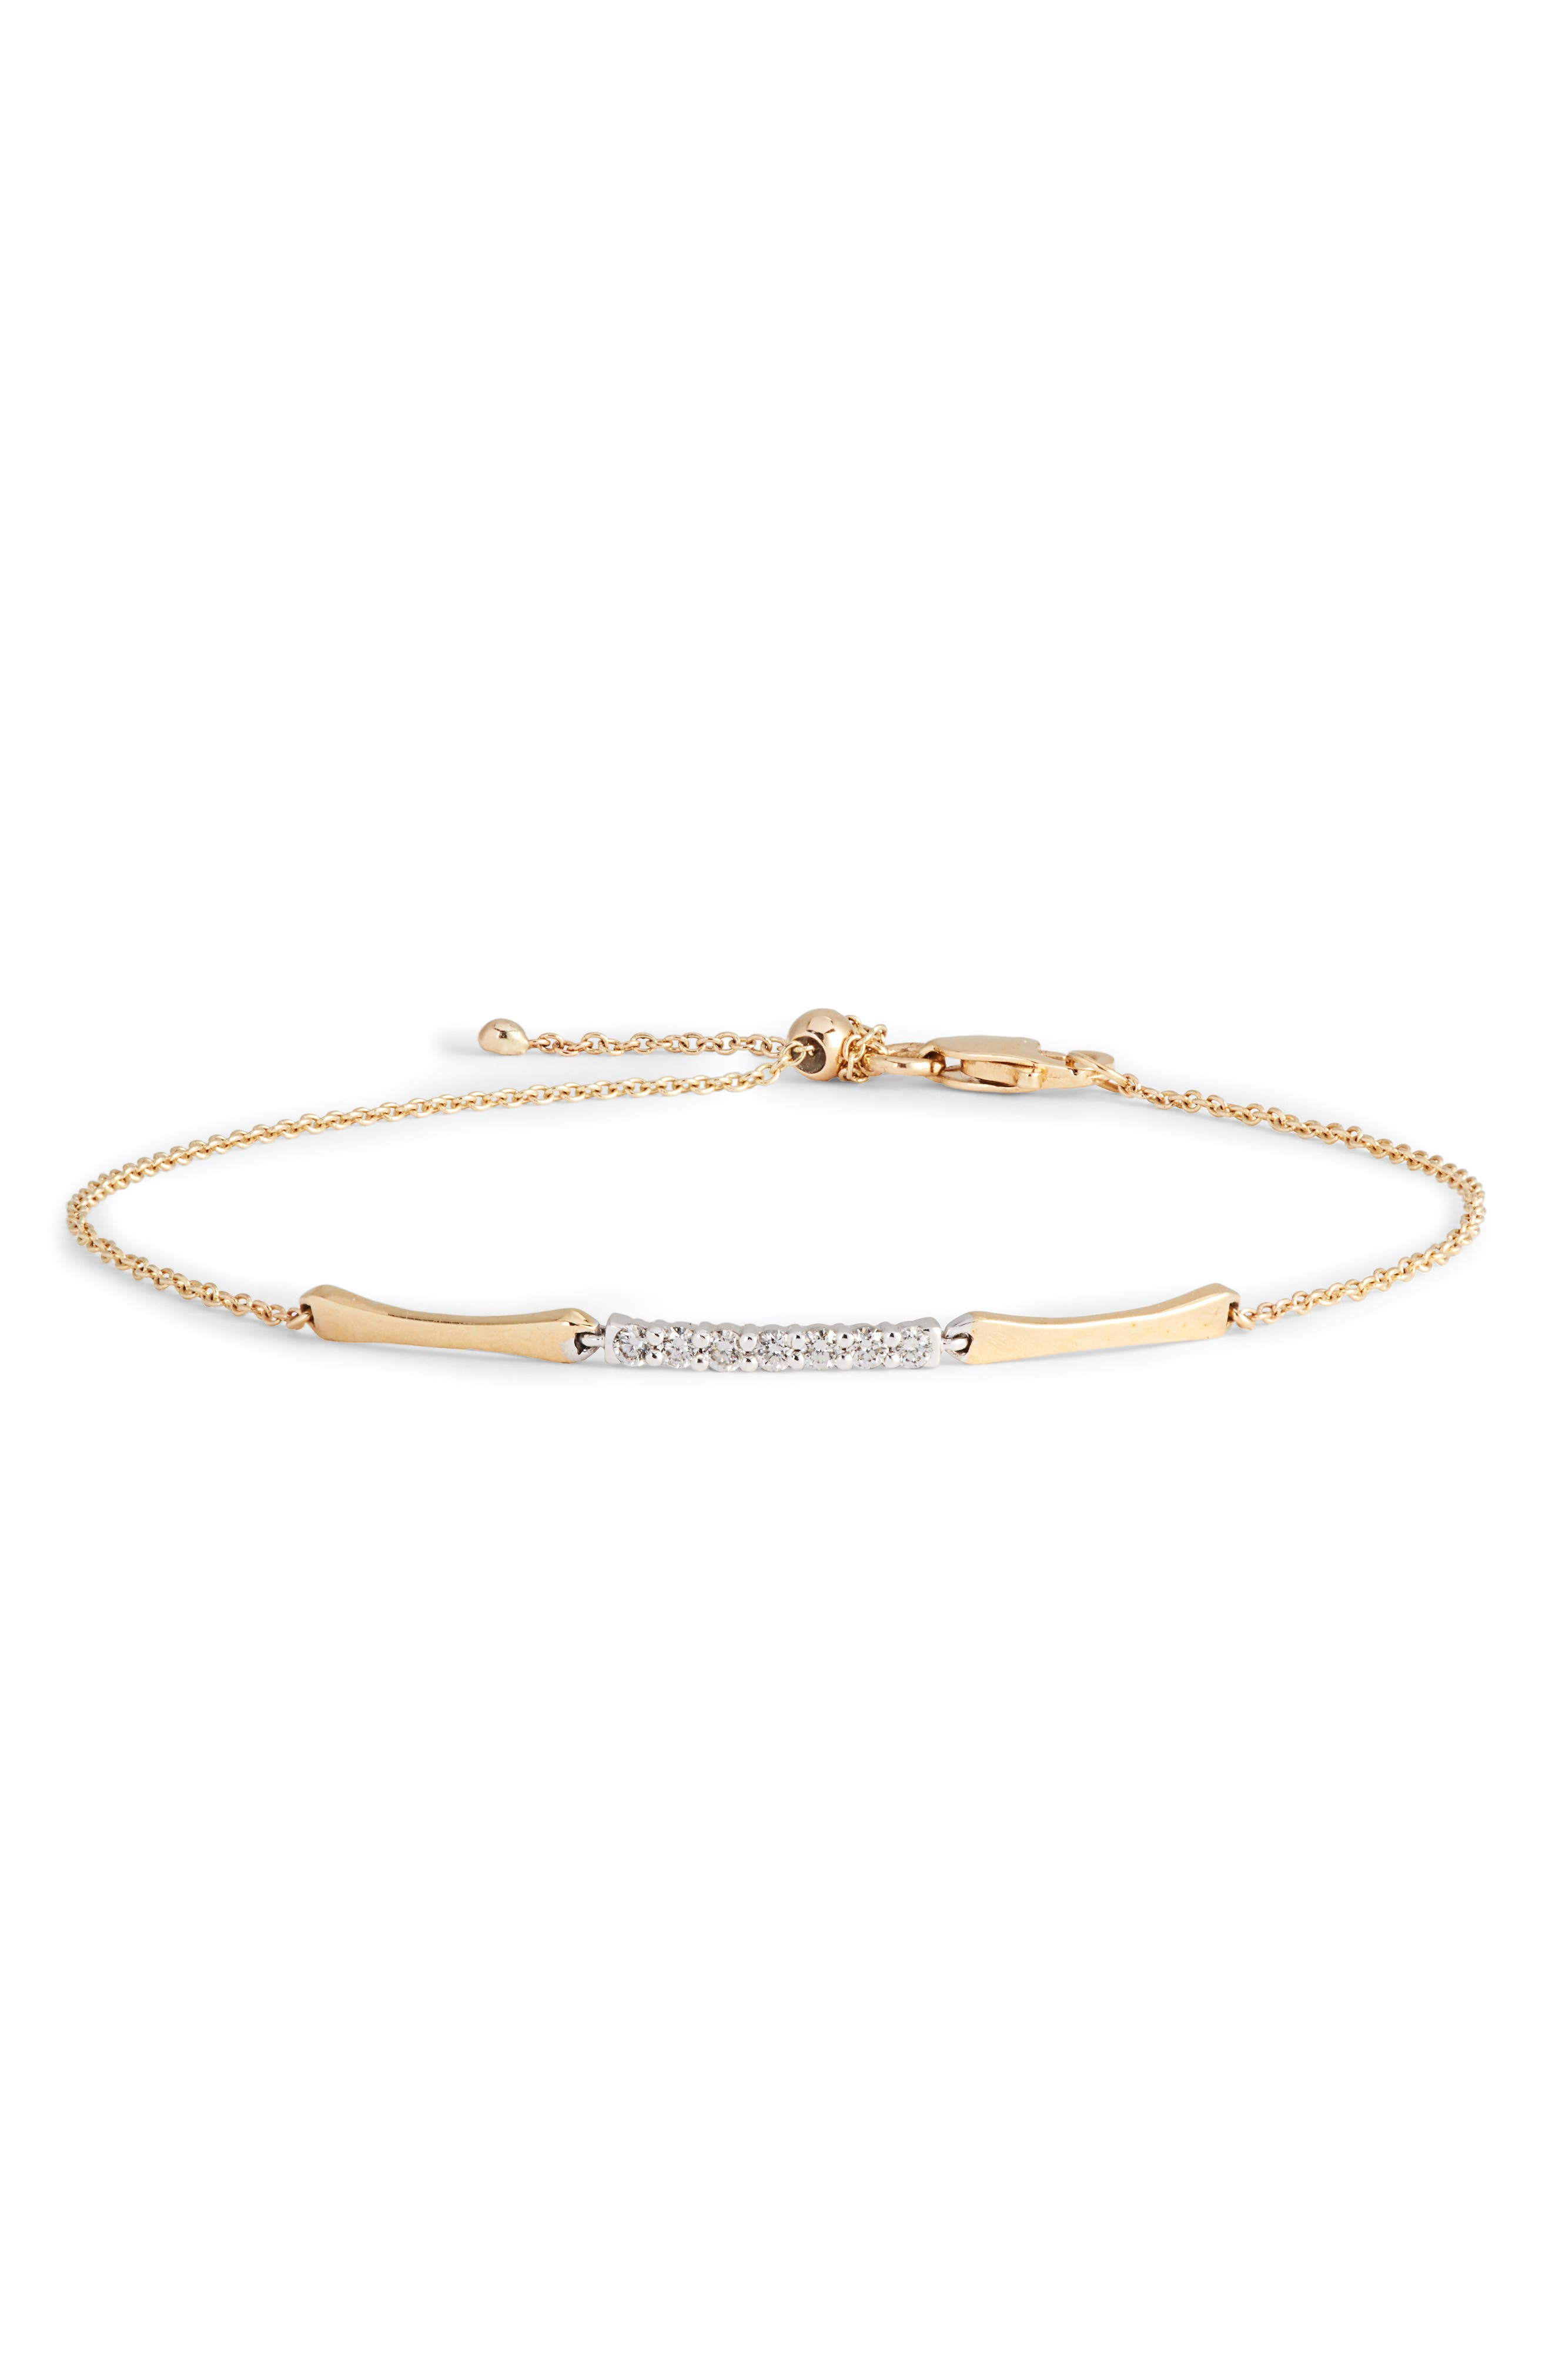 18K Gold Fine Jewelry Nordstrom